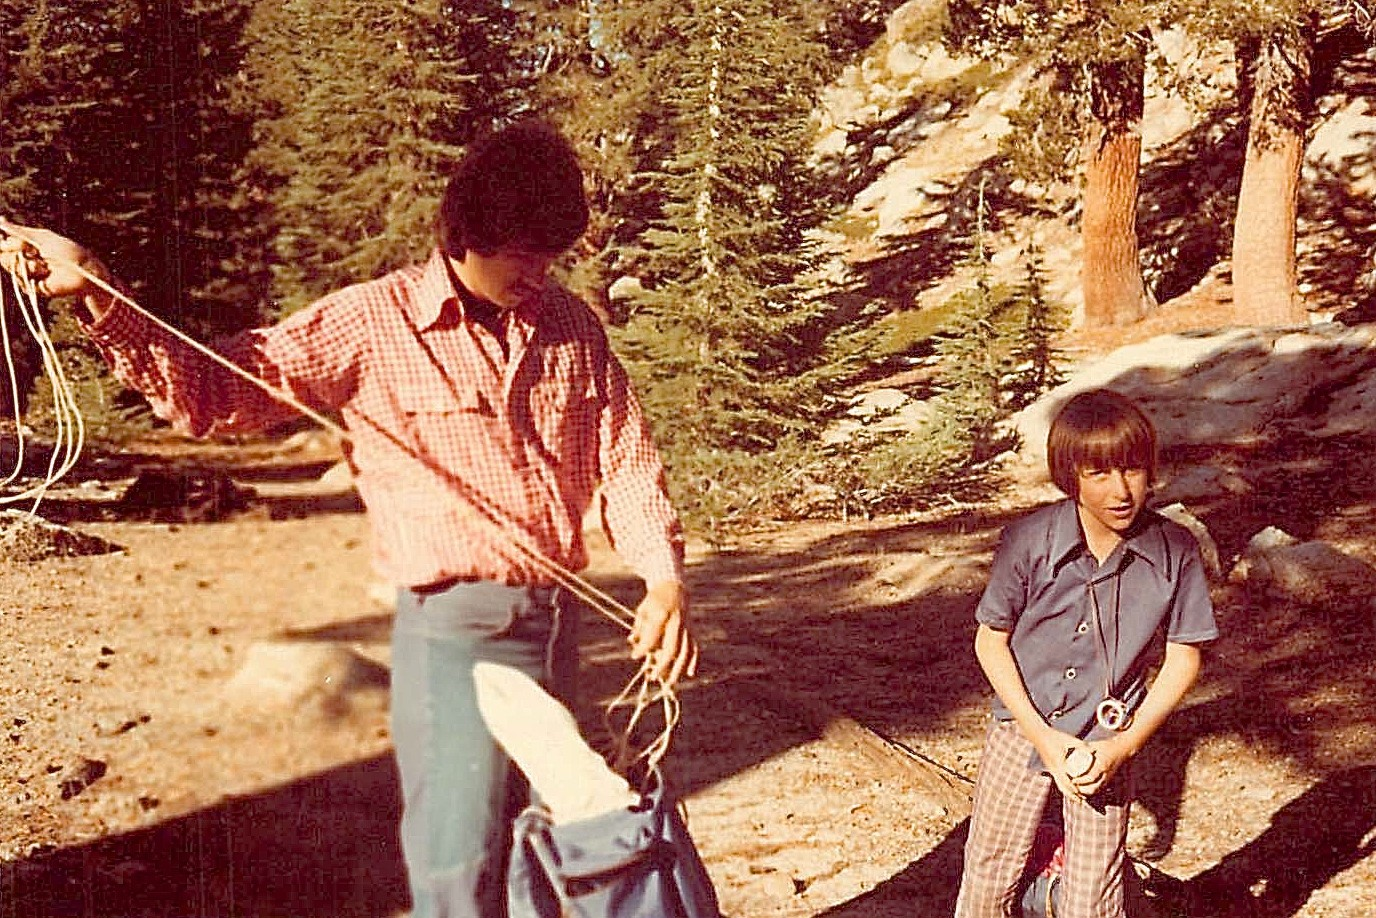 Reg Kelly & son Gordon, 1976 backpacking trip with his lab